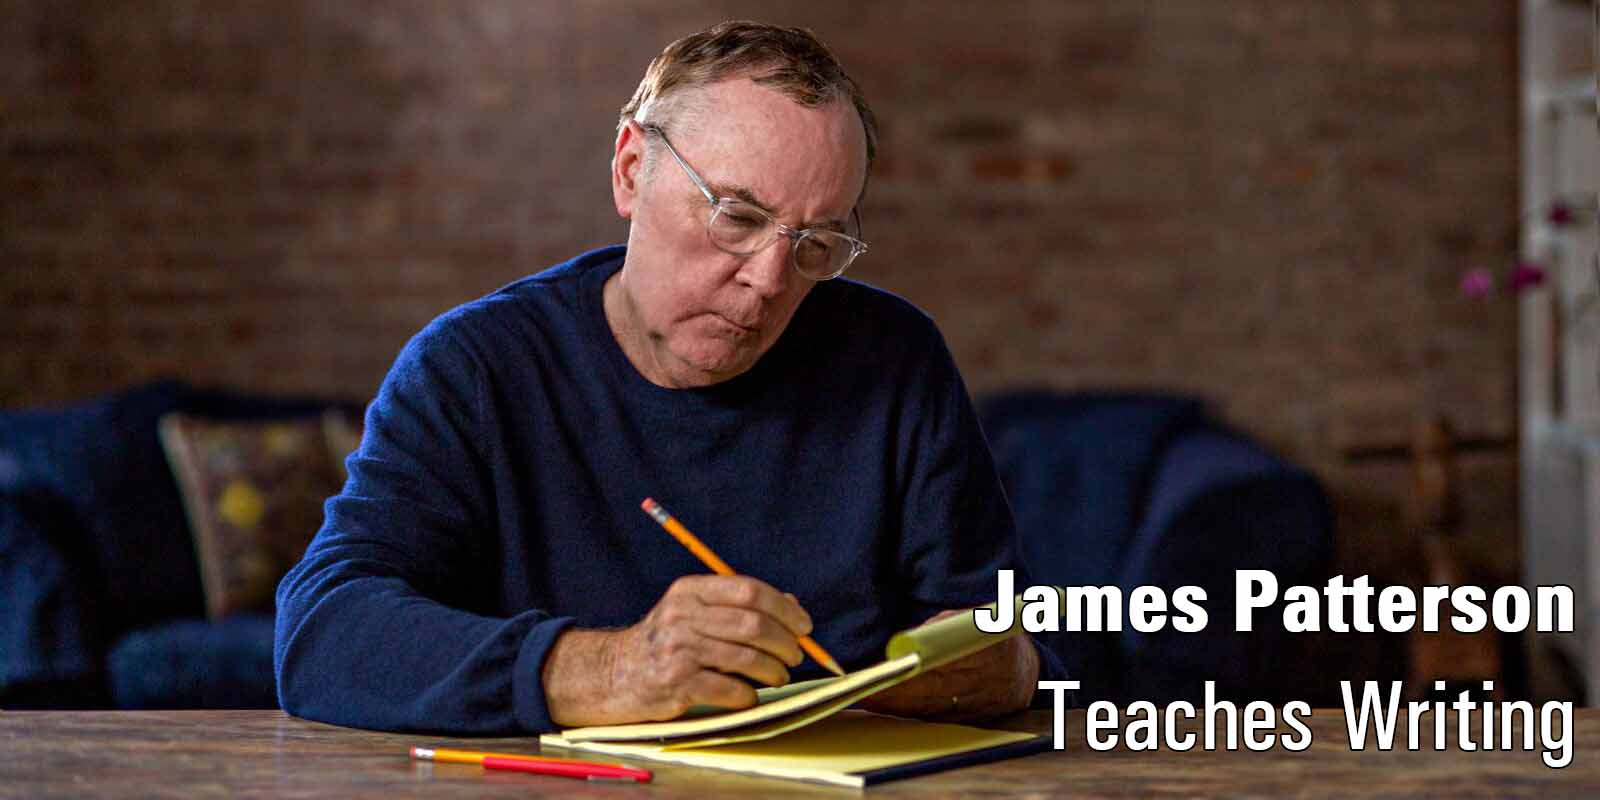 James Patterson Master Class  Image: Master Class